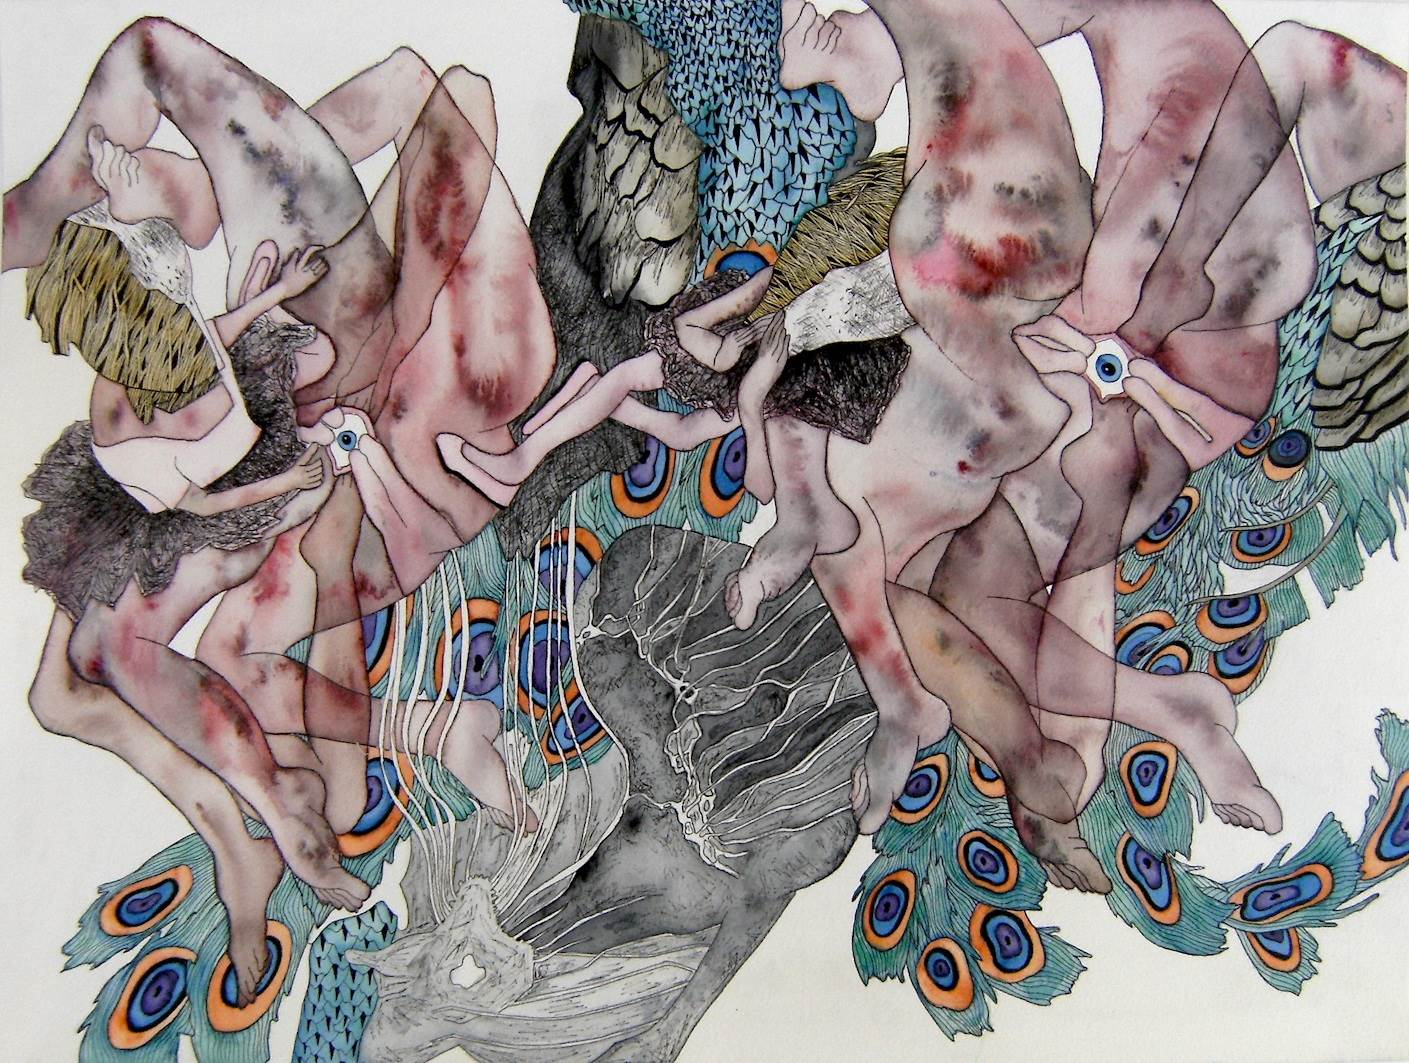 Twins, original Body Watercolor Drawing and Illustration by lorinet julie